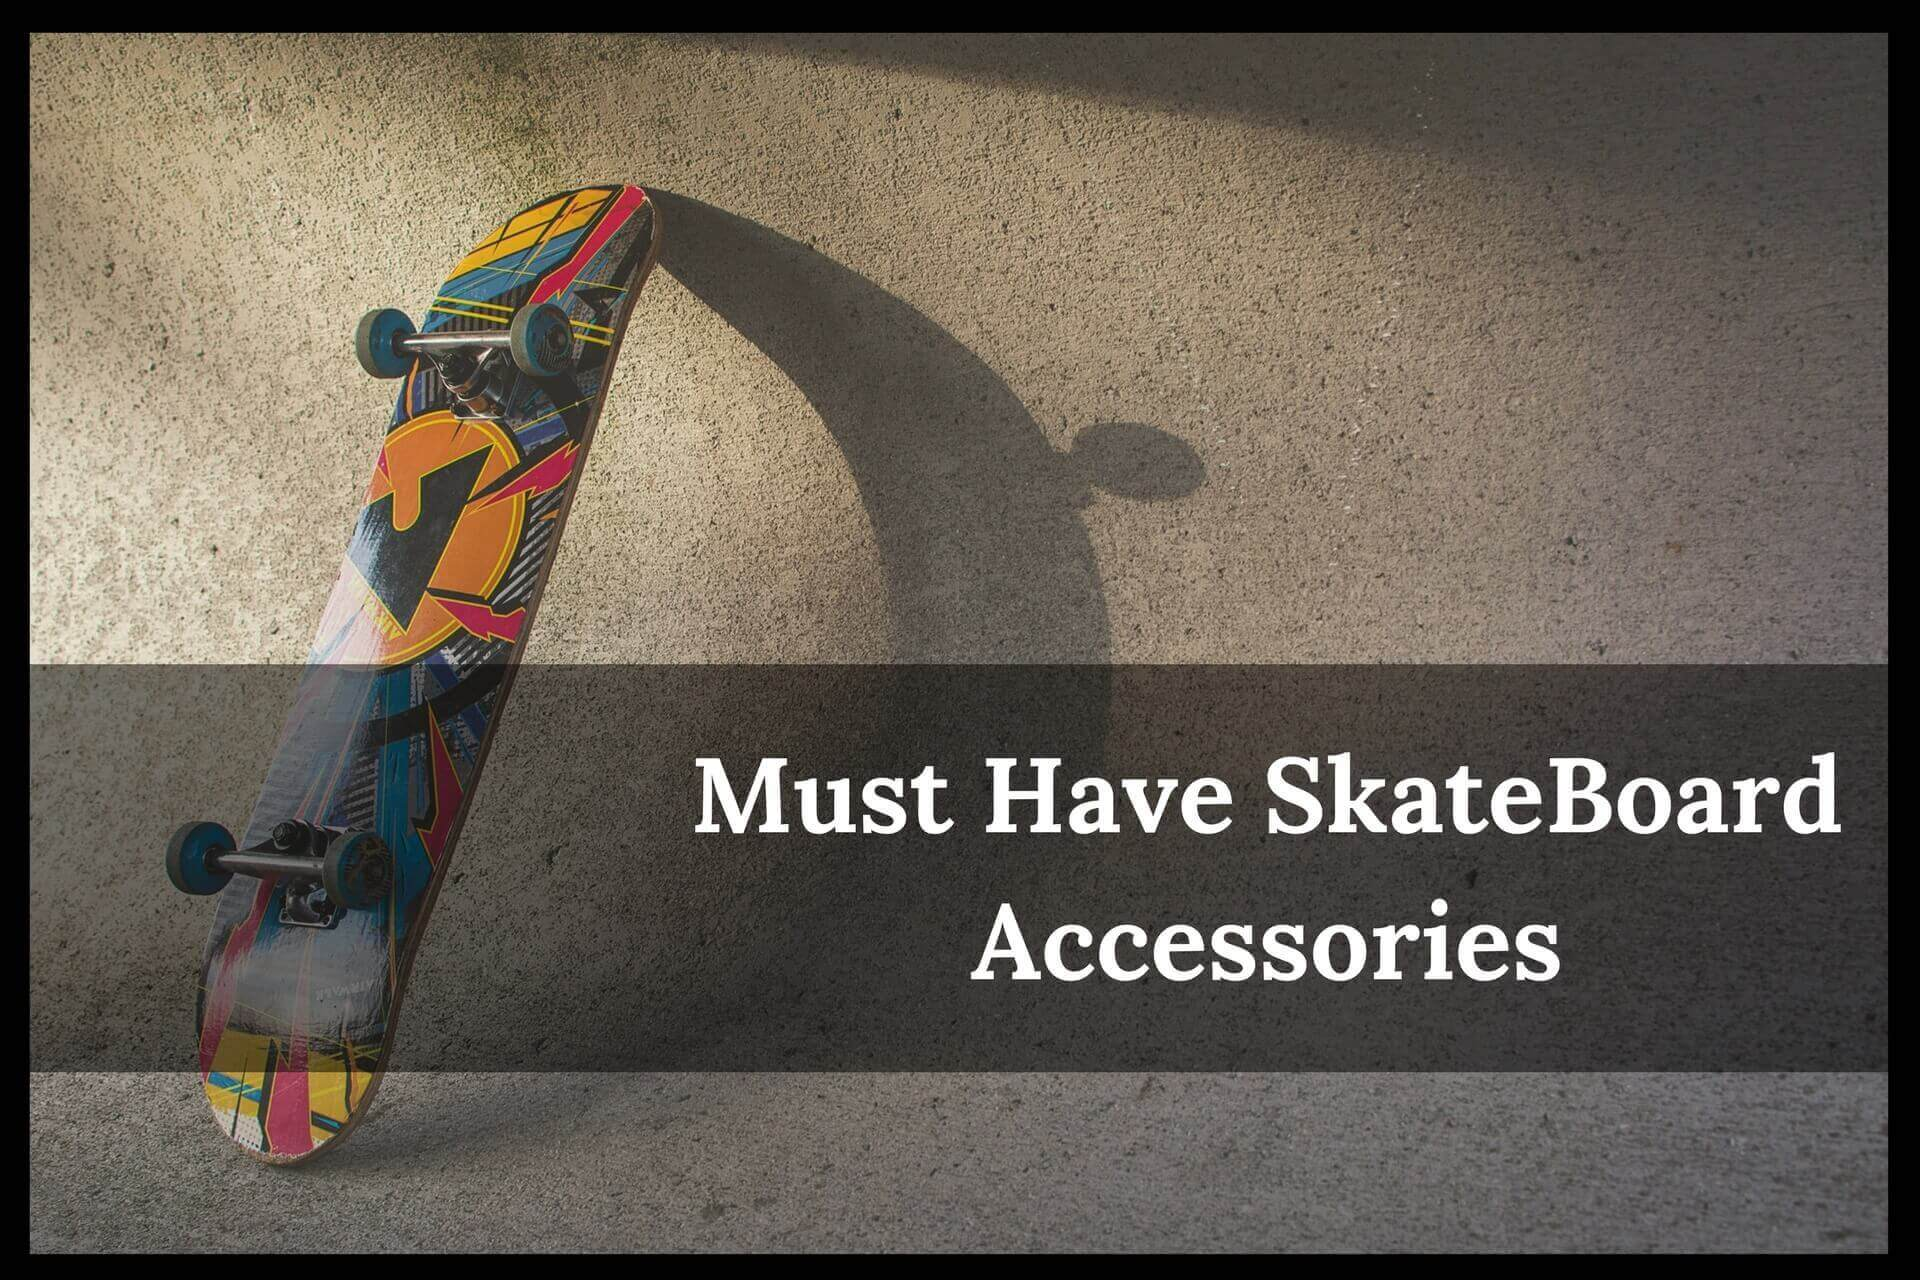 Must Have SkateBoard Accessories